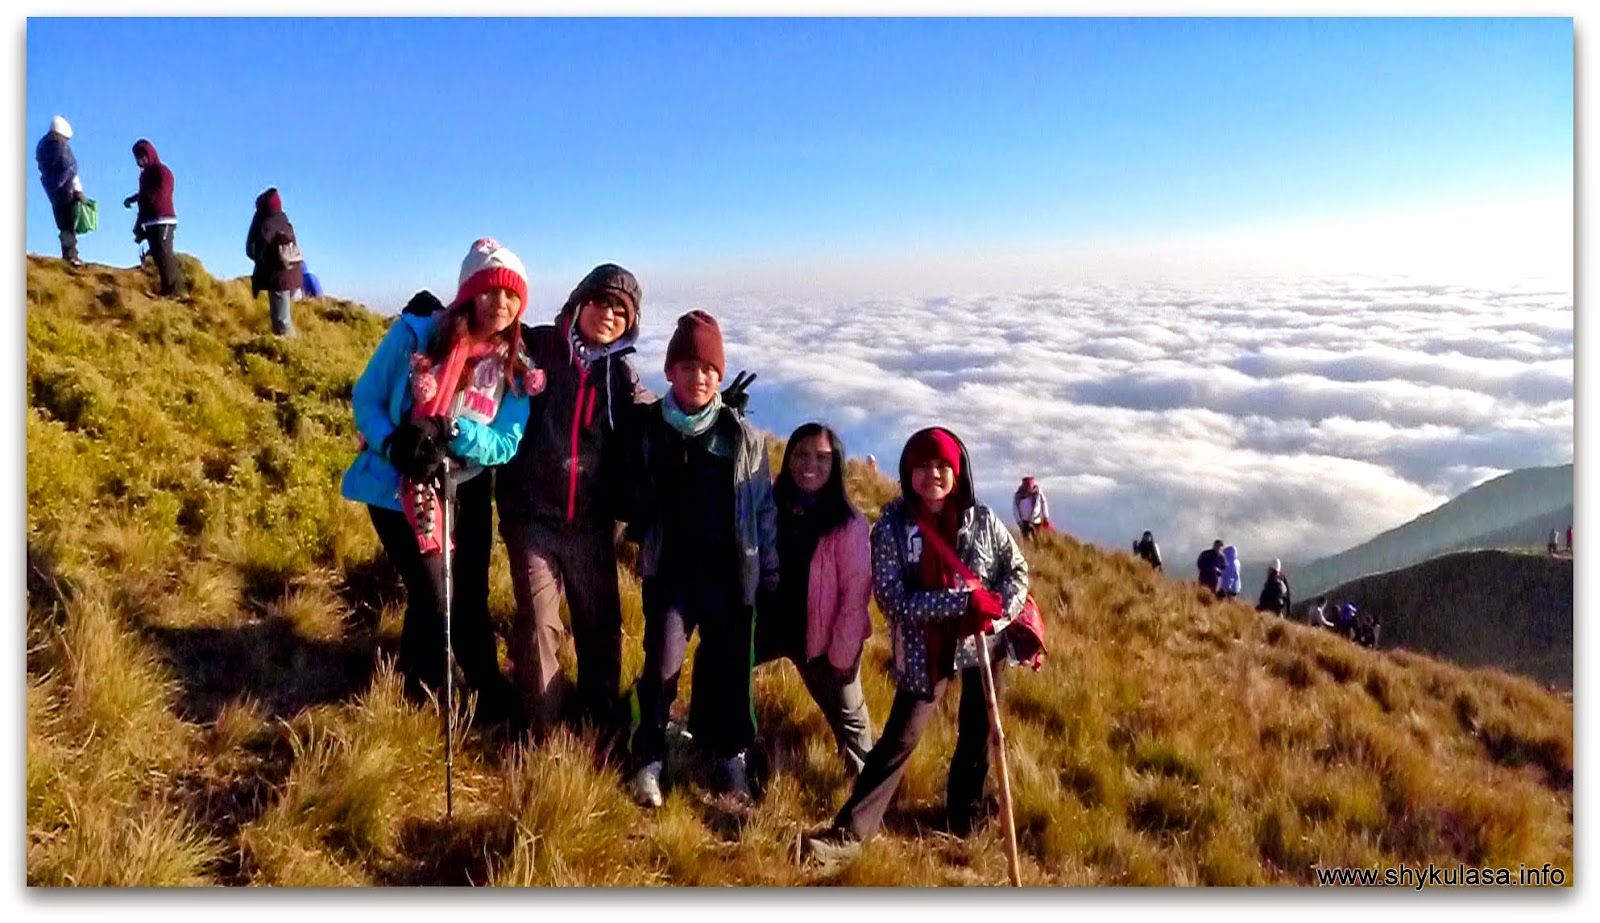 Sea of Clouds, Mt Pulag